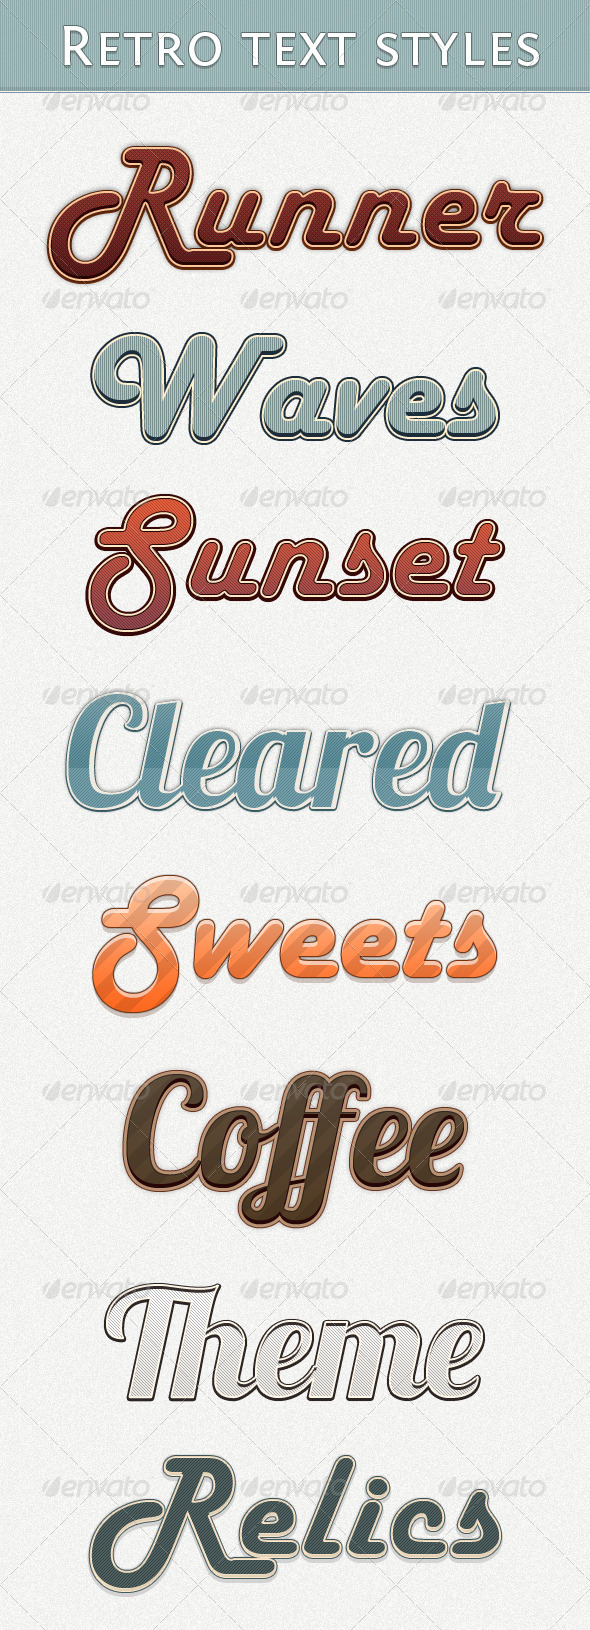 GraphicRiver Retro Text Styles 1681829